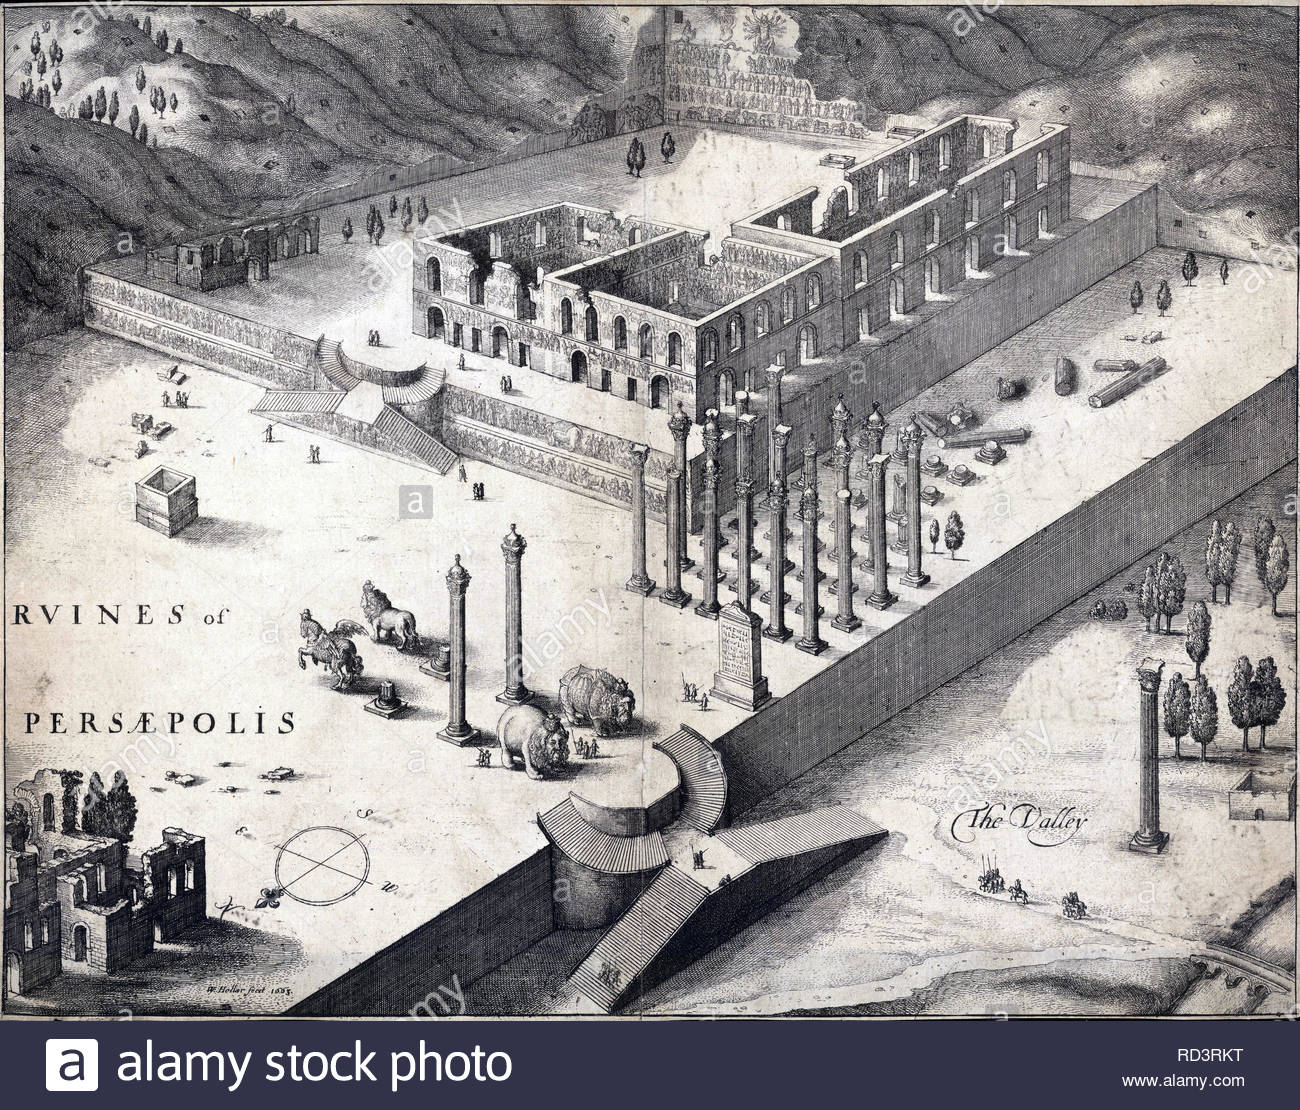 Persepolis, was the ceremonial capital of the Achaemenid Empire (ca. 550–330 BCE). It is situated 60 km northeast of the city of Shiraz in Fars Province, Iran. Etching by Bohemian etcher Wenceslaus Hollar from 1663 - Stock Image